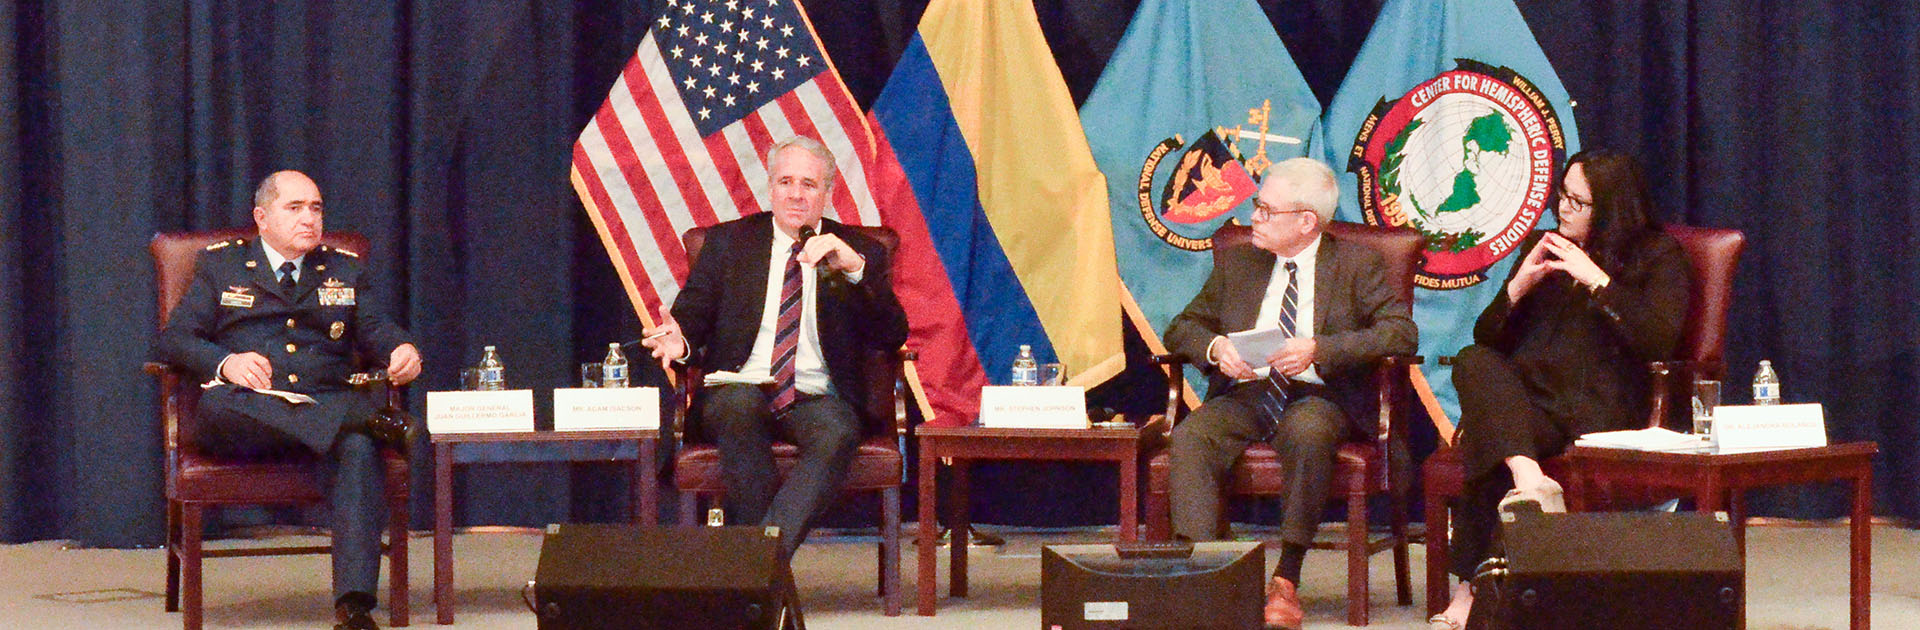 Panelists at the Transitional Justice in Colombia Hemispheric Forum